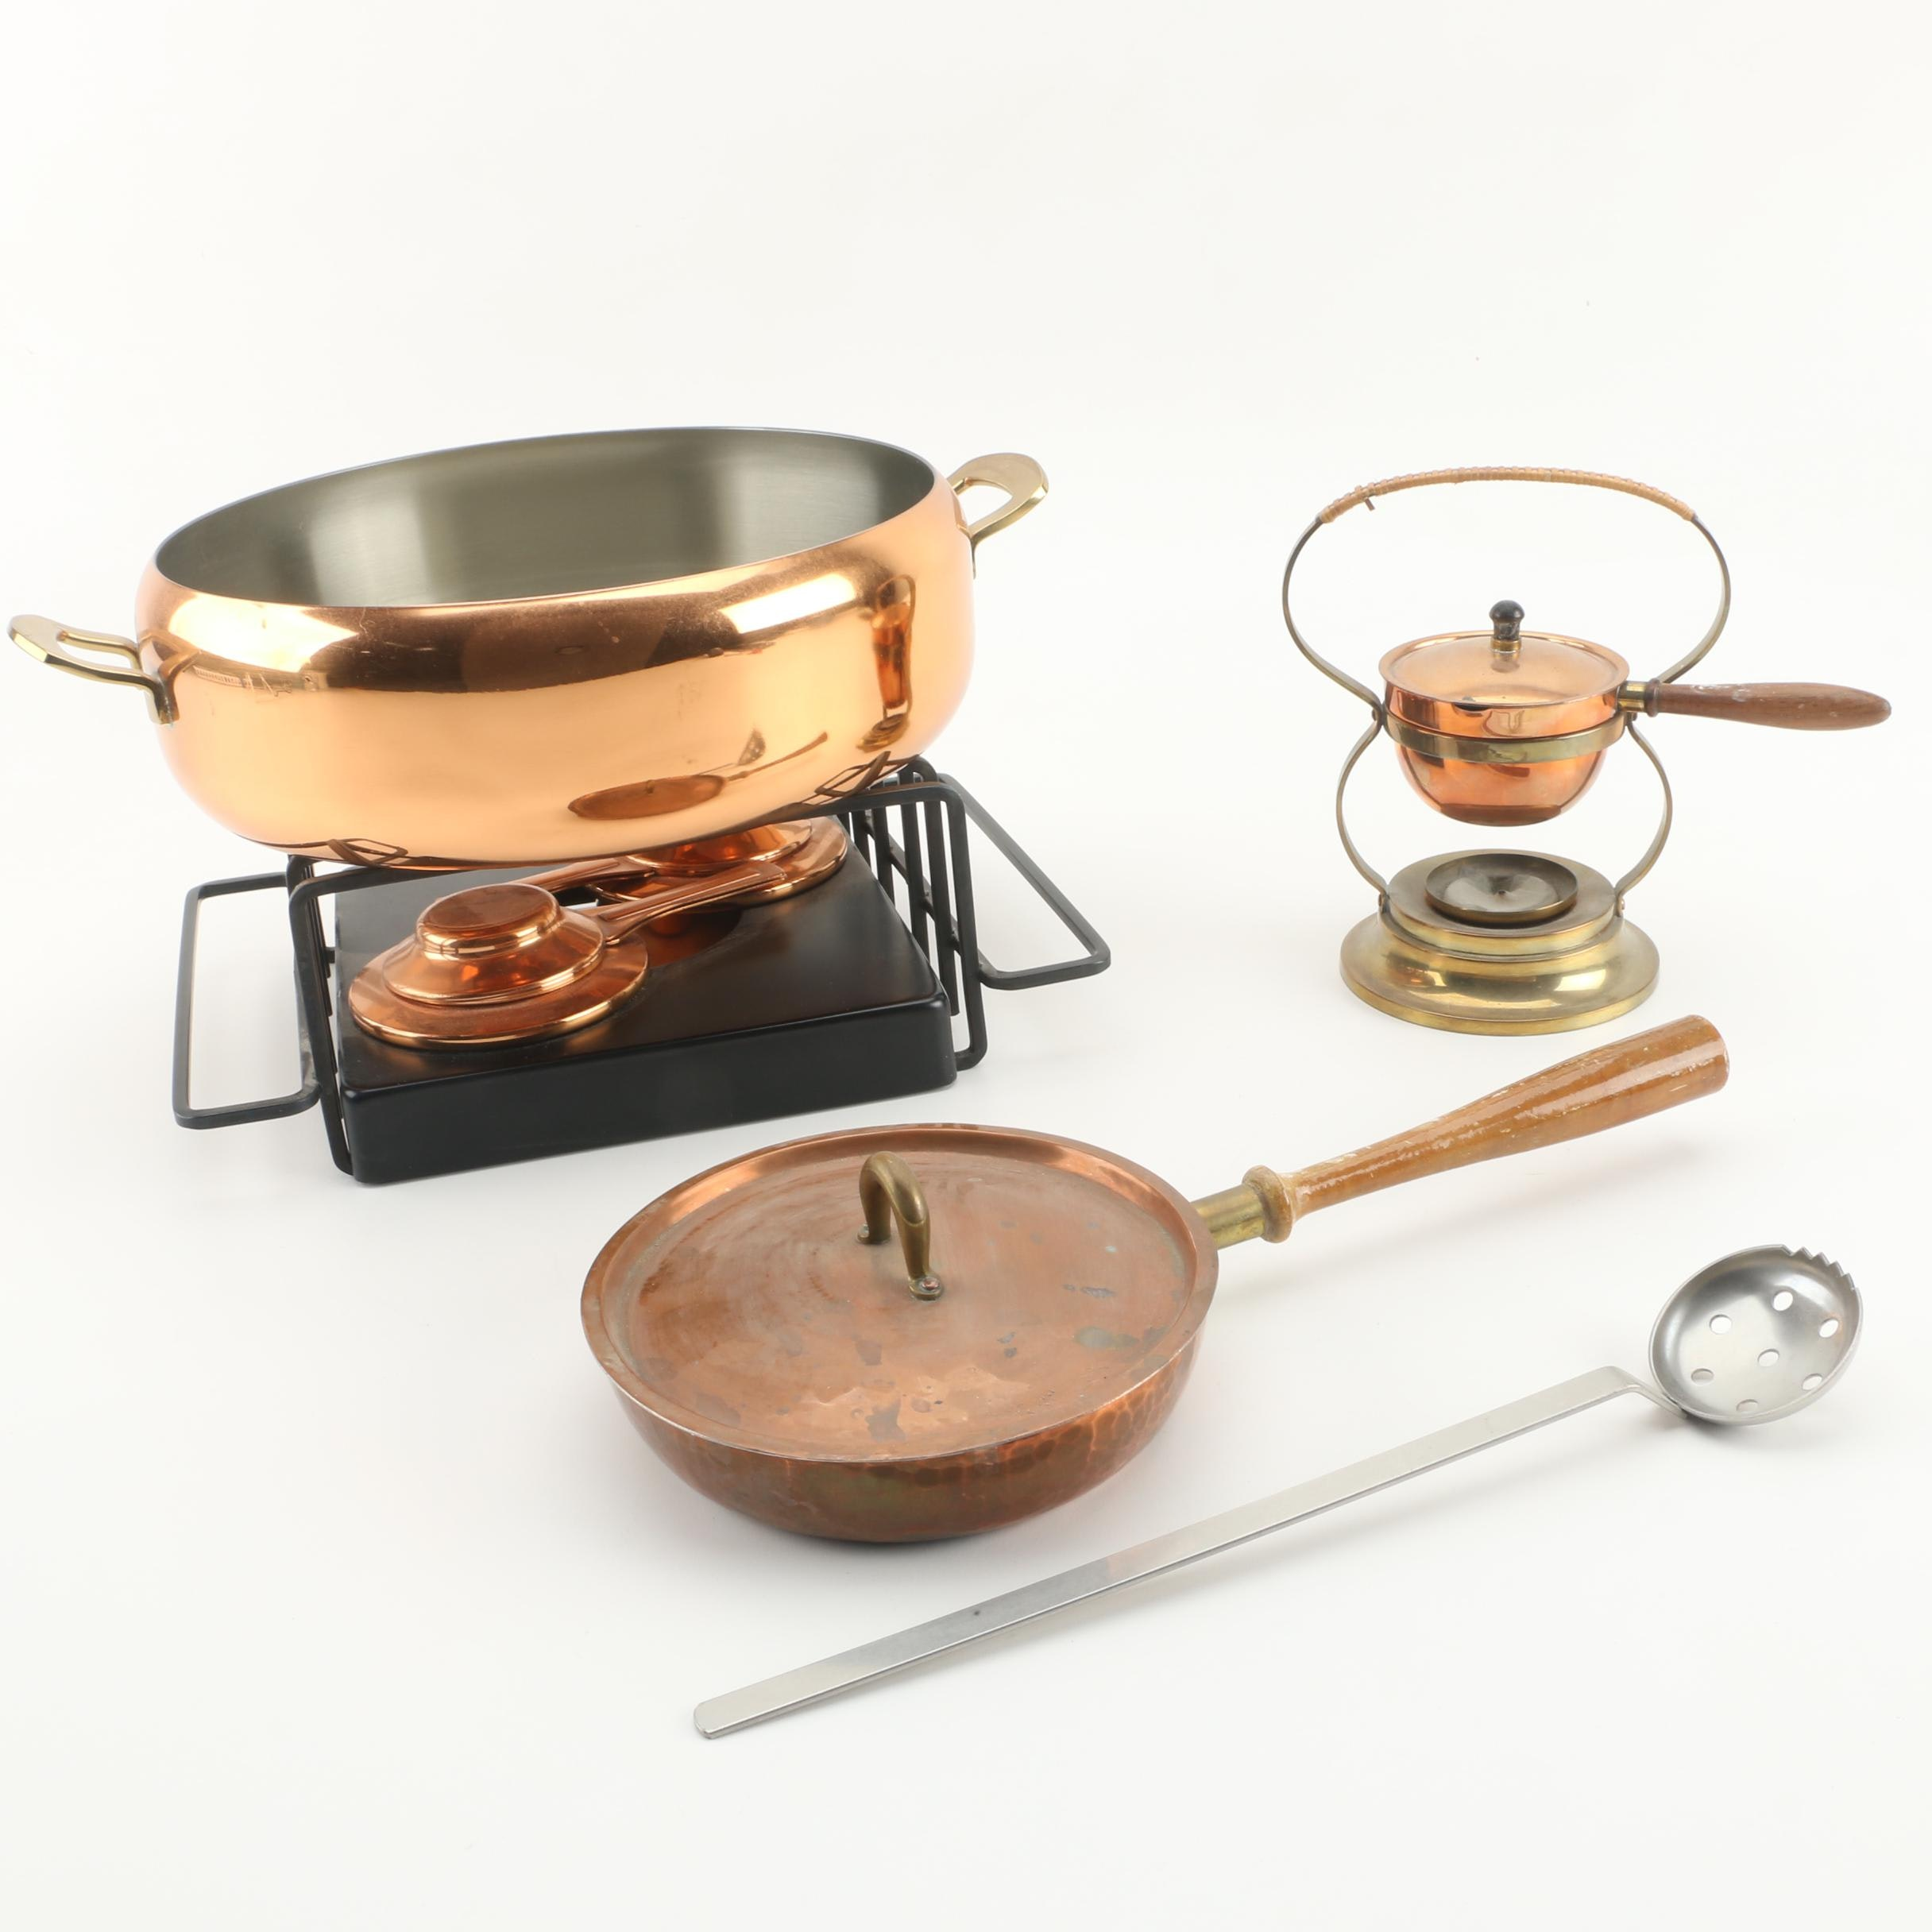 Copper Cookware featuring German Hand-Wrought Meersburg and Swiss Spring